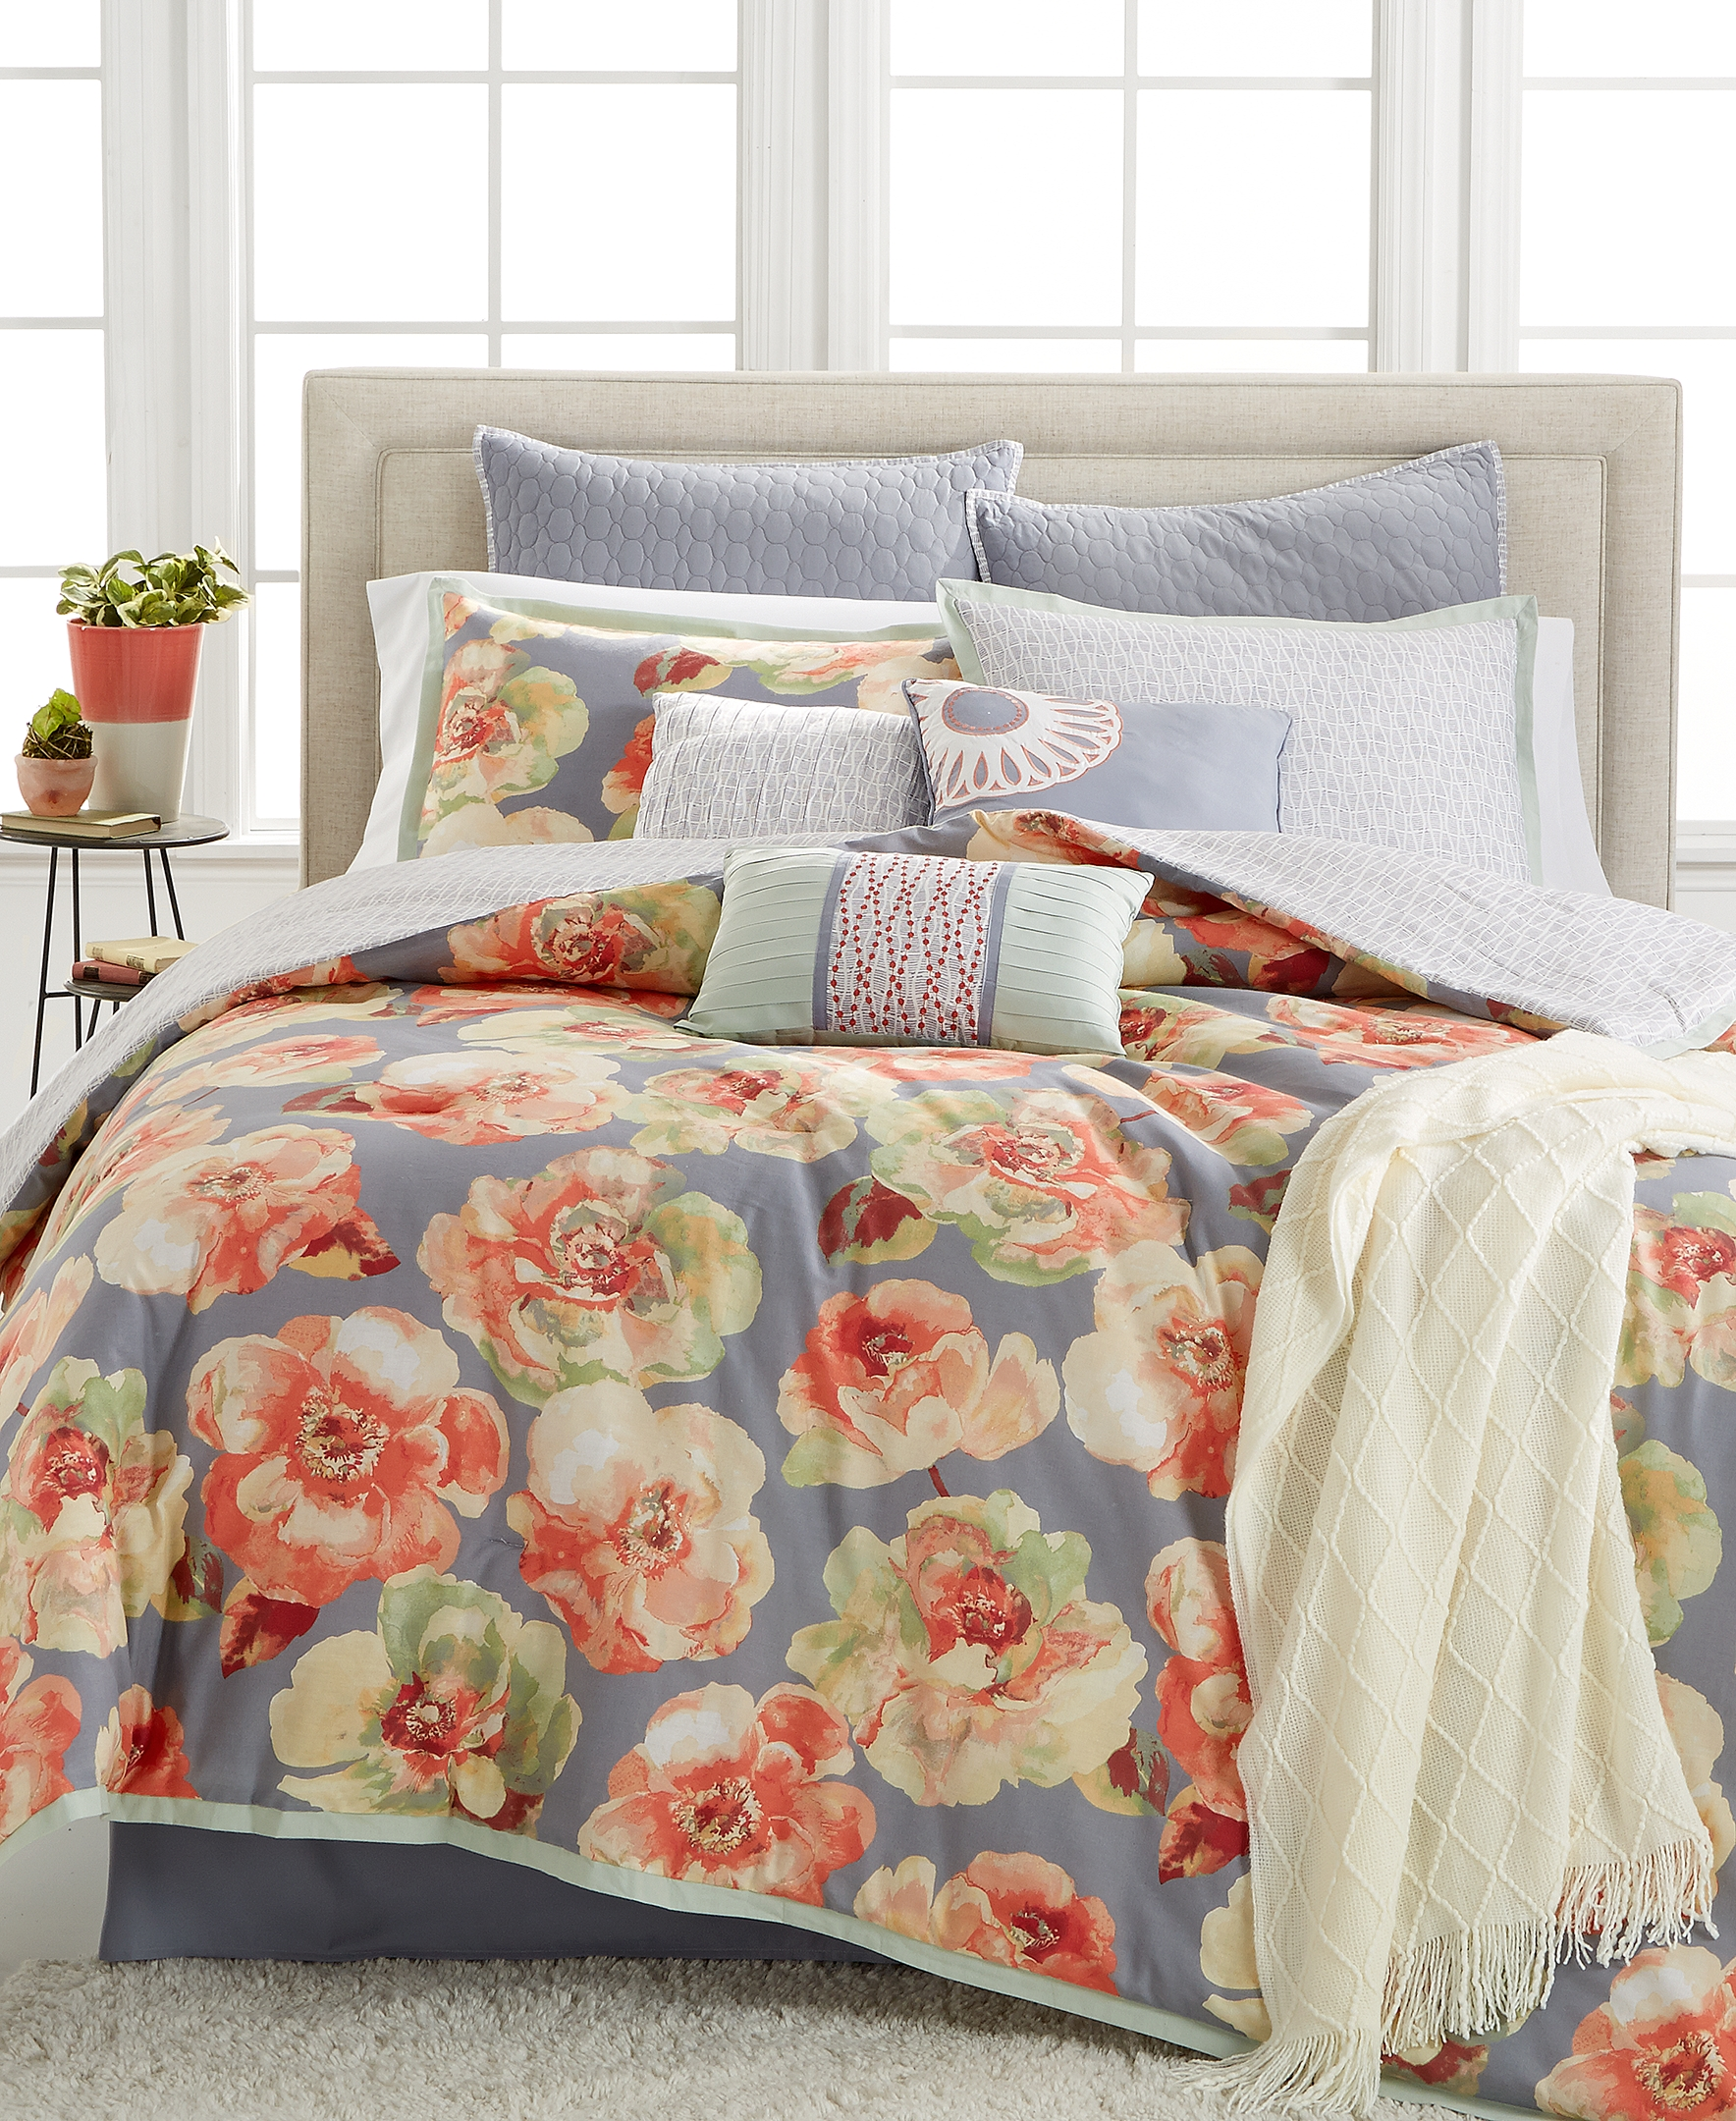 Macy Bedroom Furniture Kelly Ripa Home Launches At Macys For Summer 2016 Business Wire